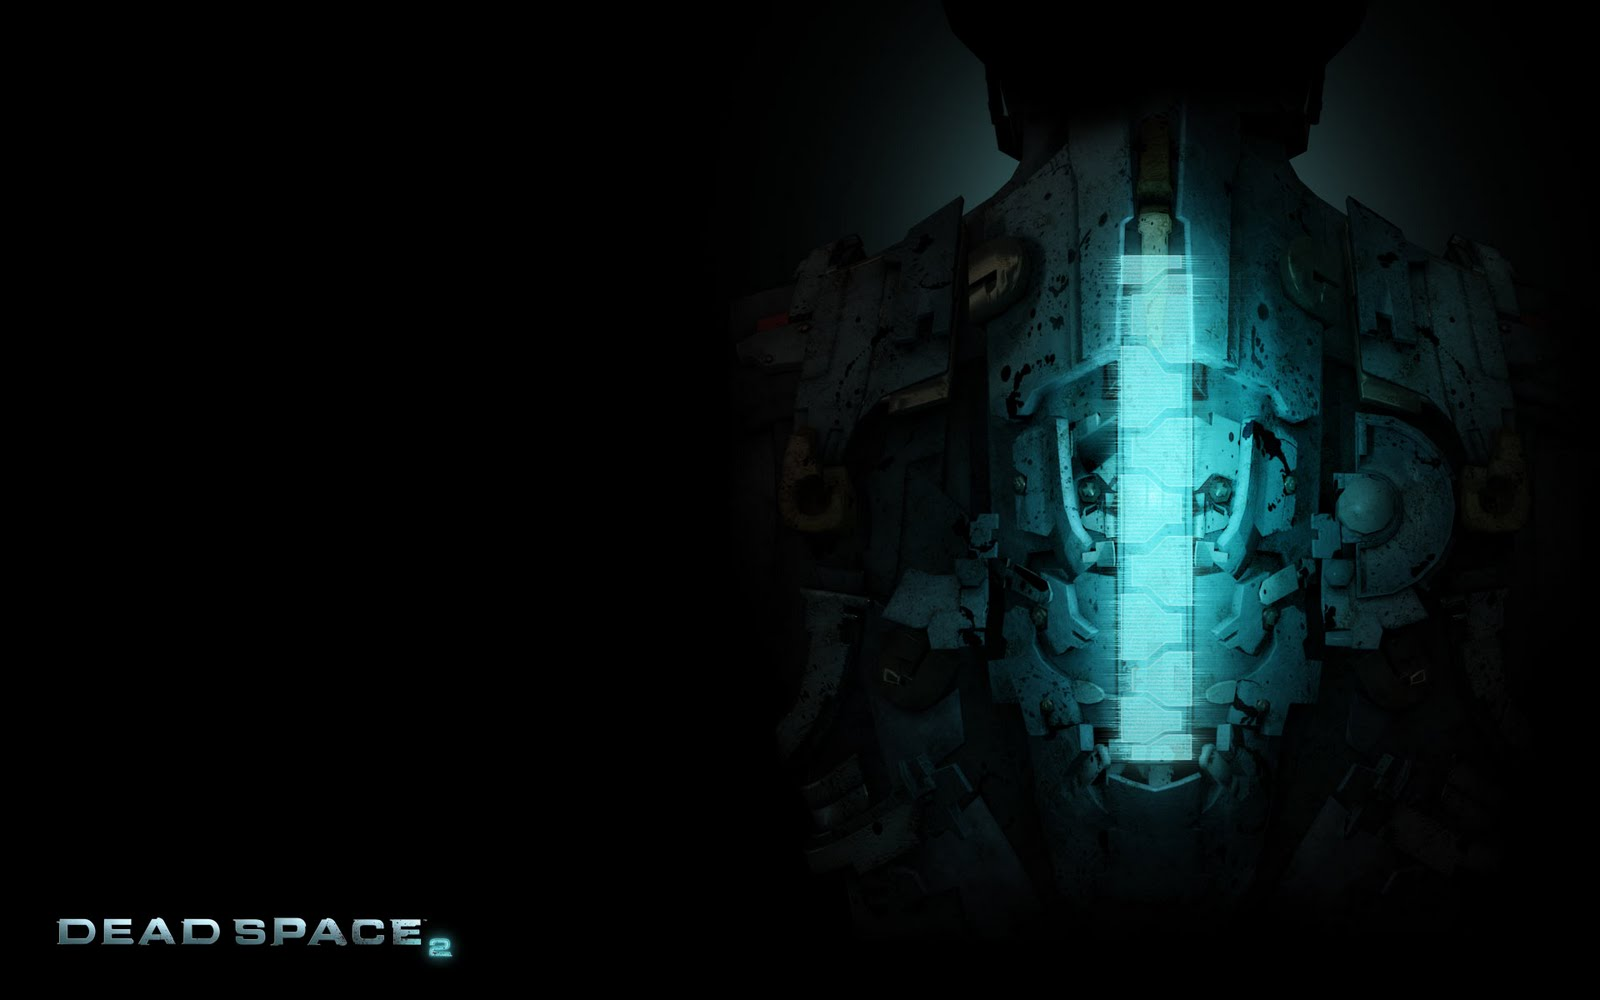 Personal gaming four dead space 2 hd wallpapers - Dead space 1 wallpaper hd ...